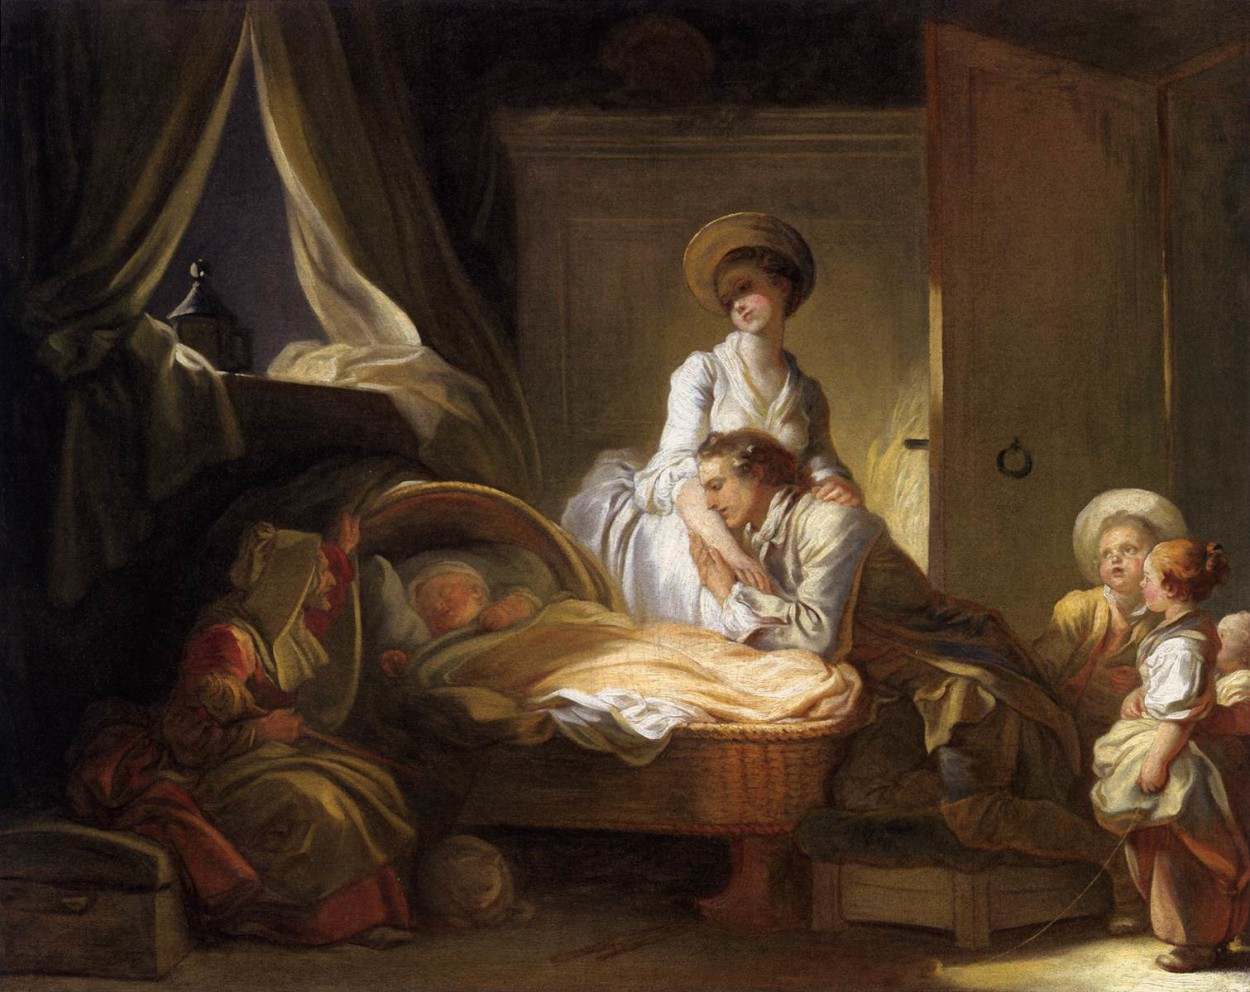 A Visit to the Nursery Jean Honoré Fragonard Oil on Canvas 1775 National Gallery of Art, Washington, DC